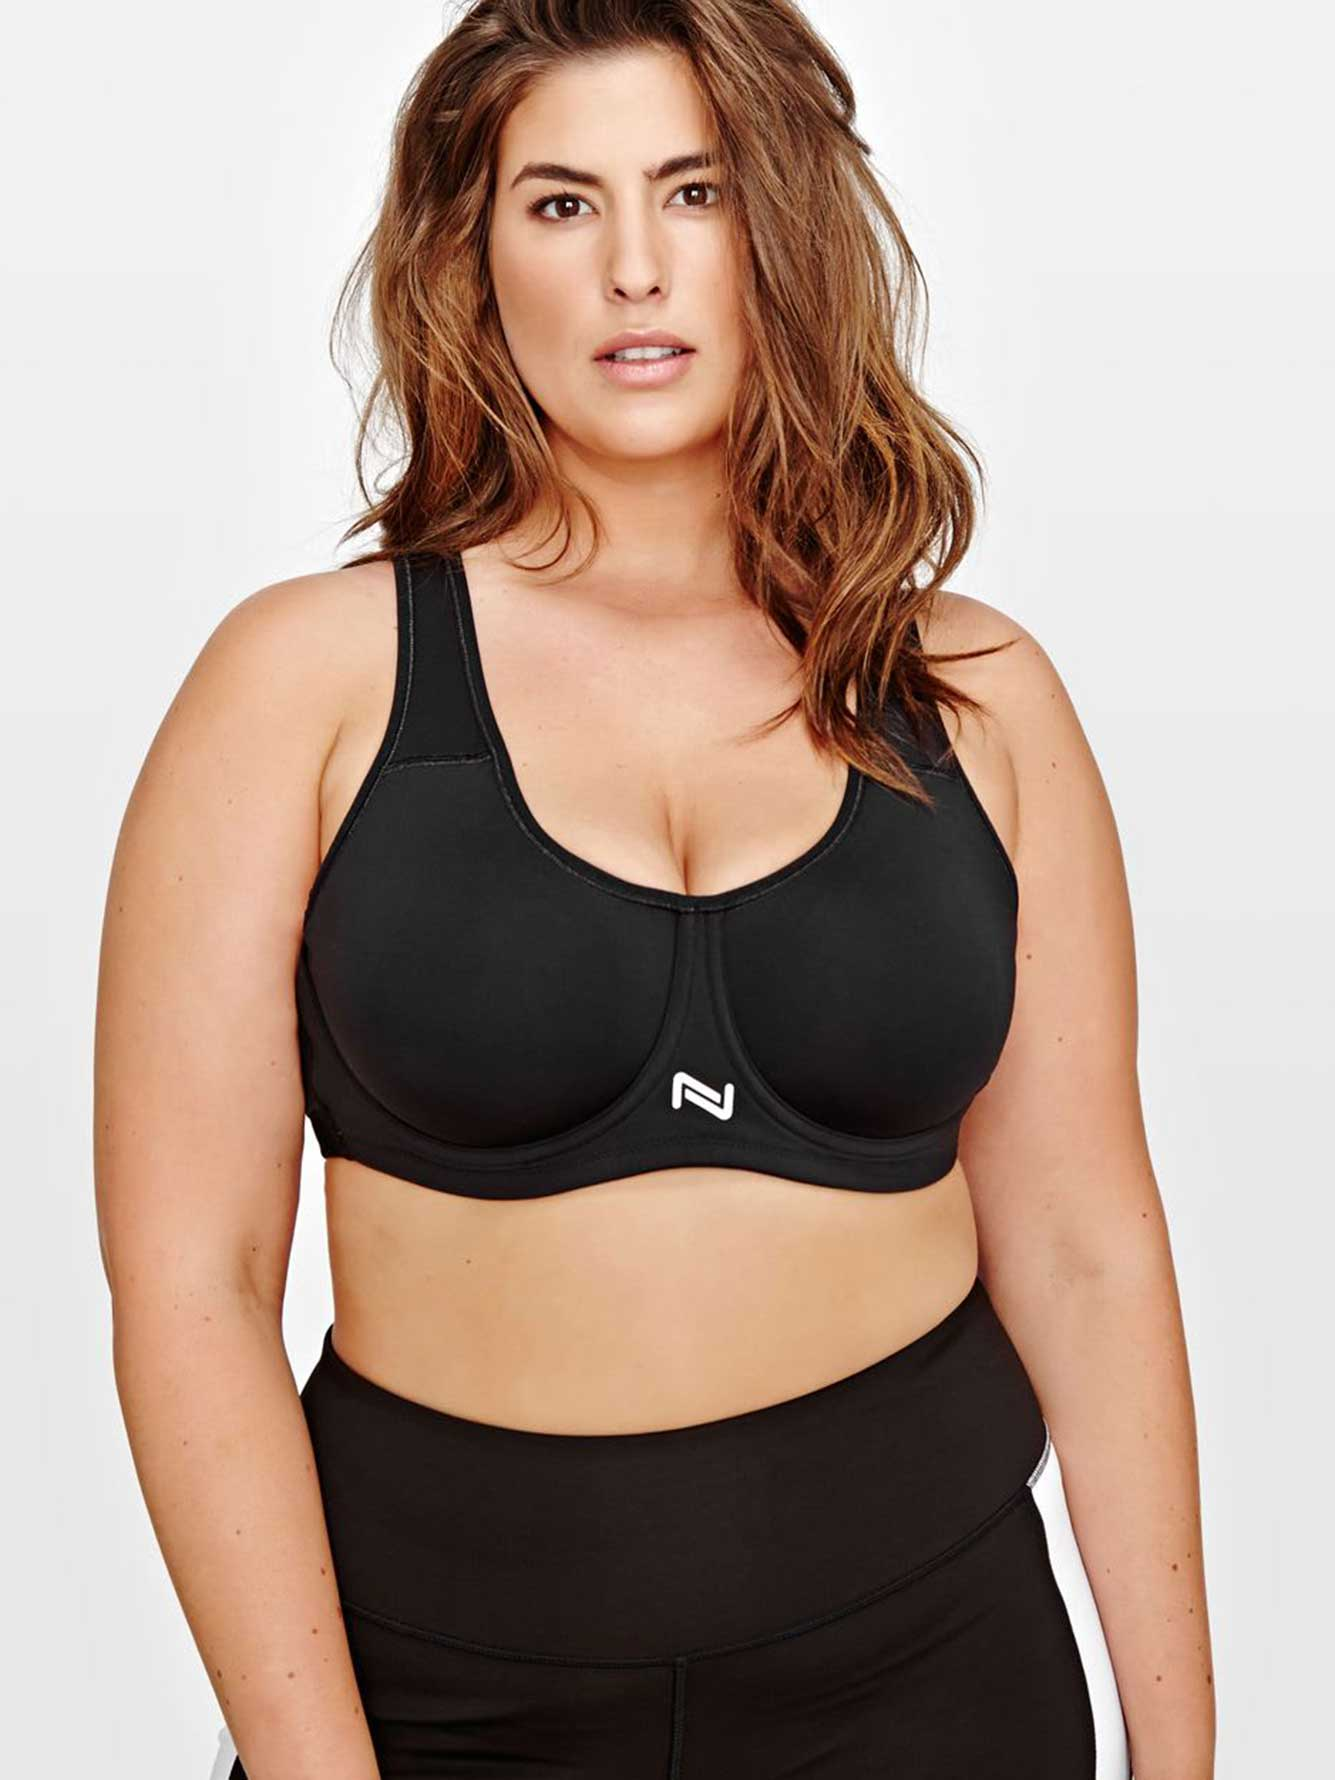 Buy H Bras at Macy's and get FREE SHIPPING with $99 purchase! Great selection of push-up bras, wireless bras & other most popular bra styles and brands.